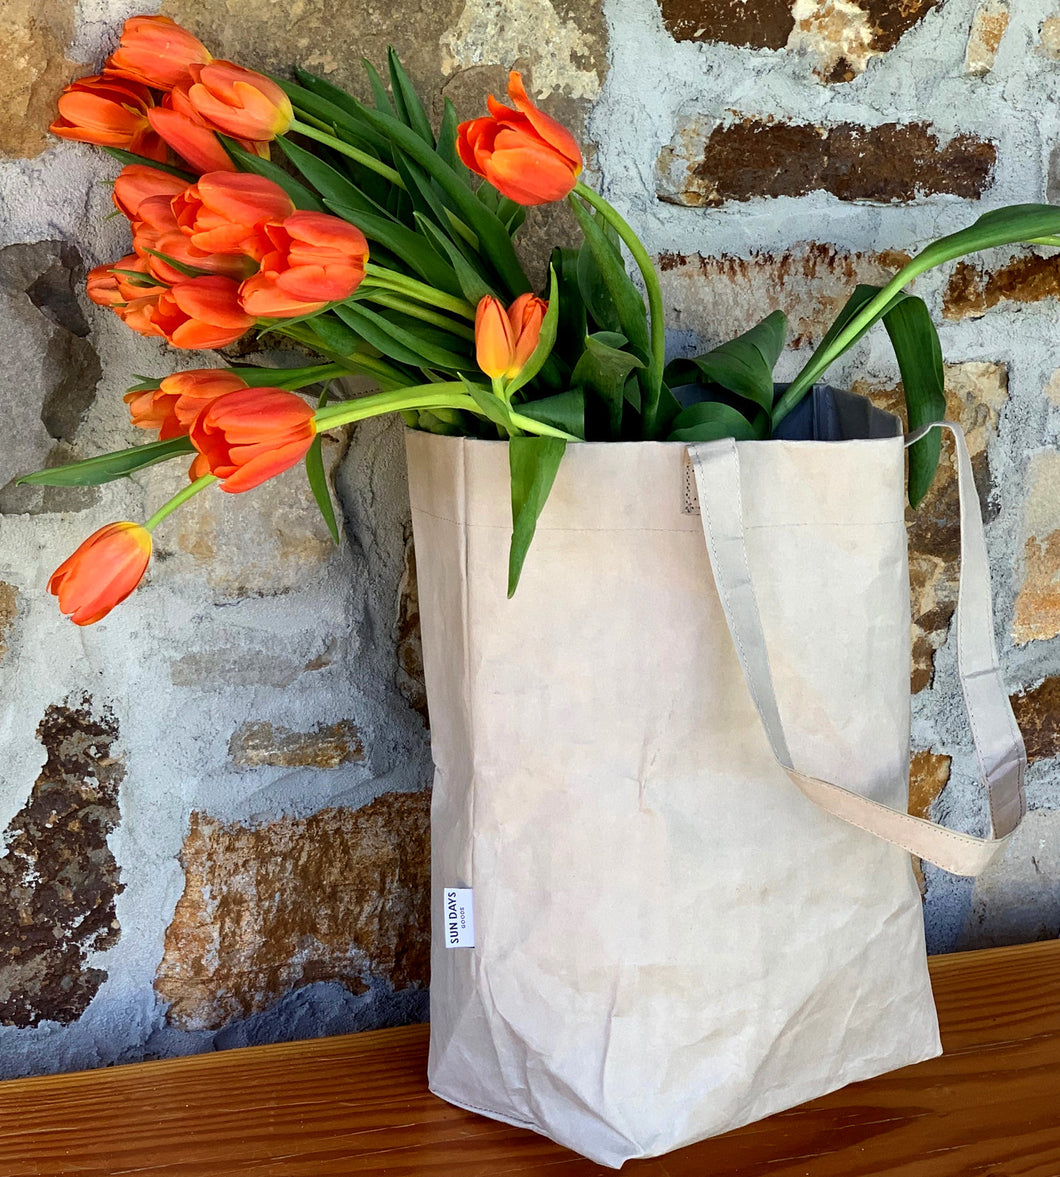 100%  Reusable, Biodegradable, Sustainable Market Bag - Choice of Color